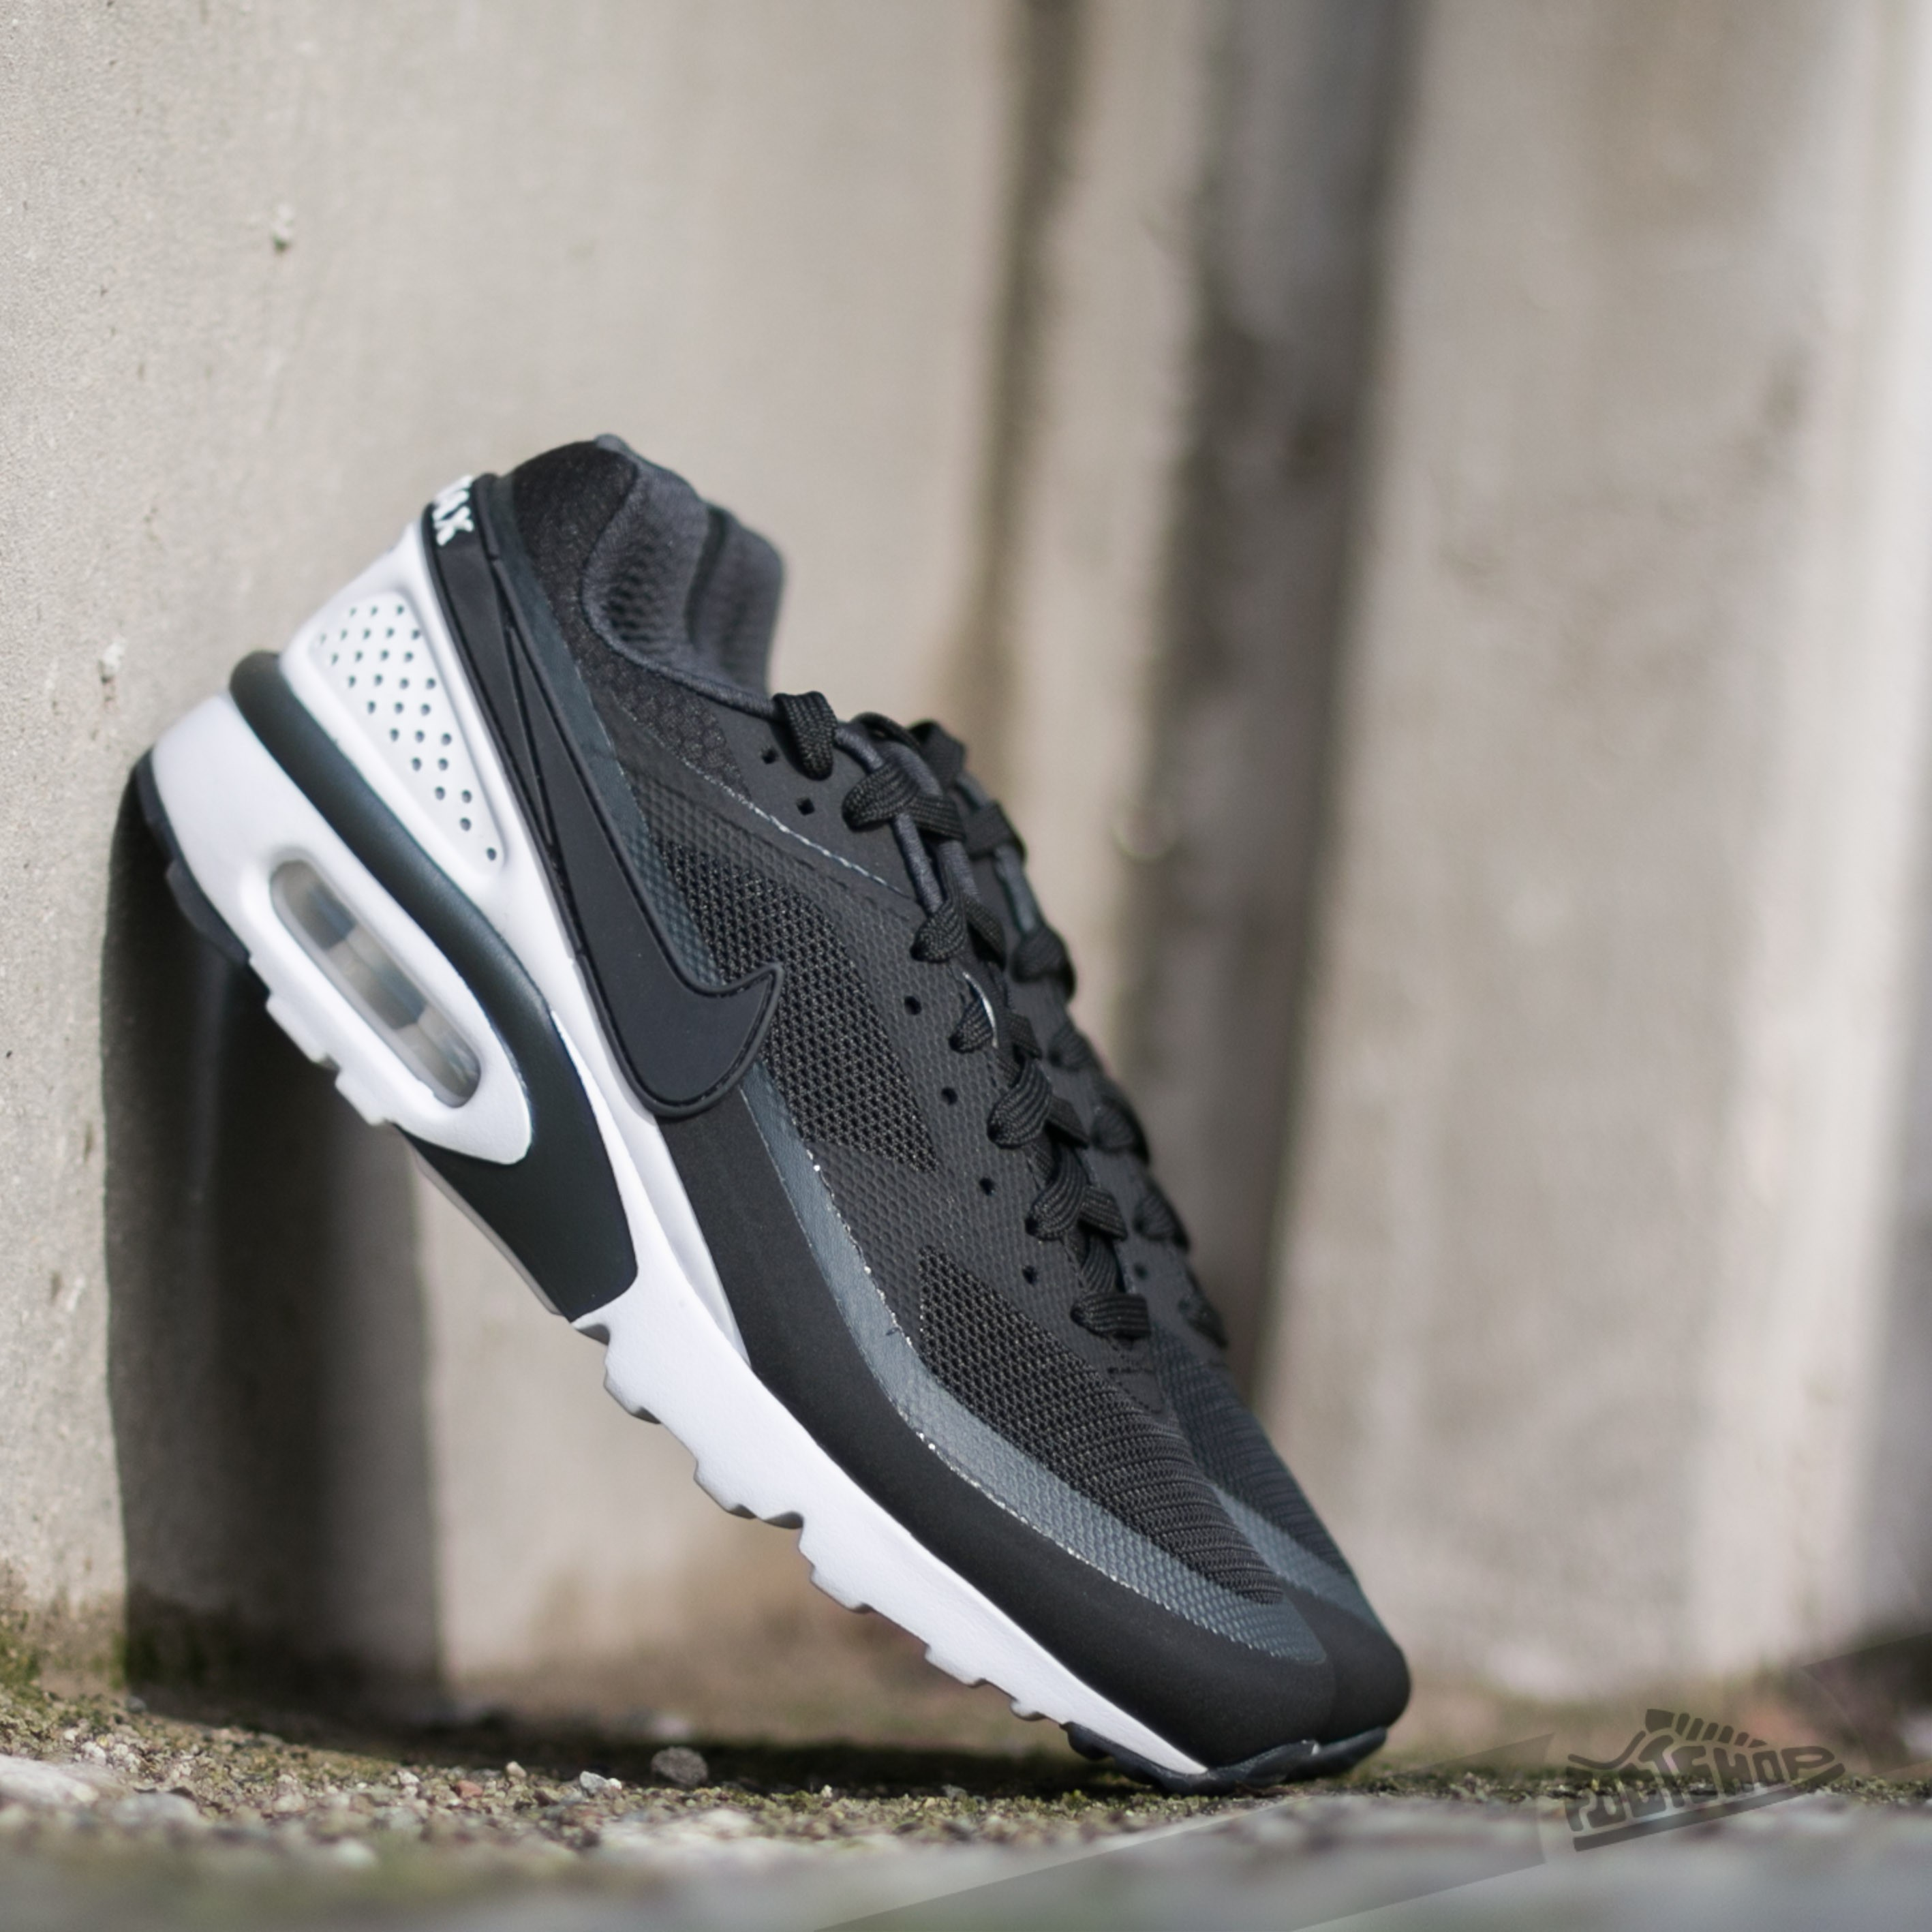 e3cec69f36 Nike Air Max Bw Ultra Black/ Black/ Anthracite | Footshop